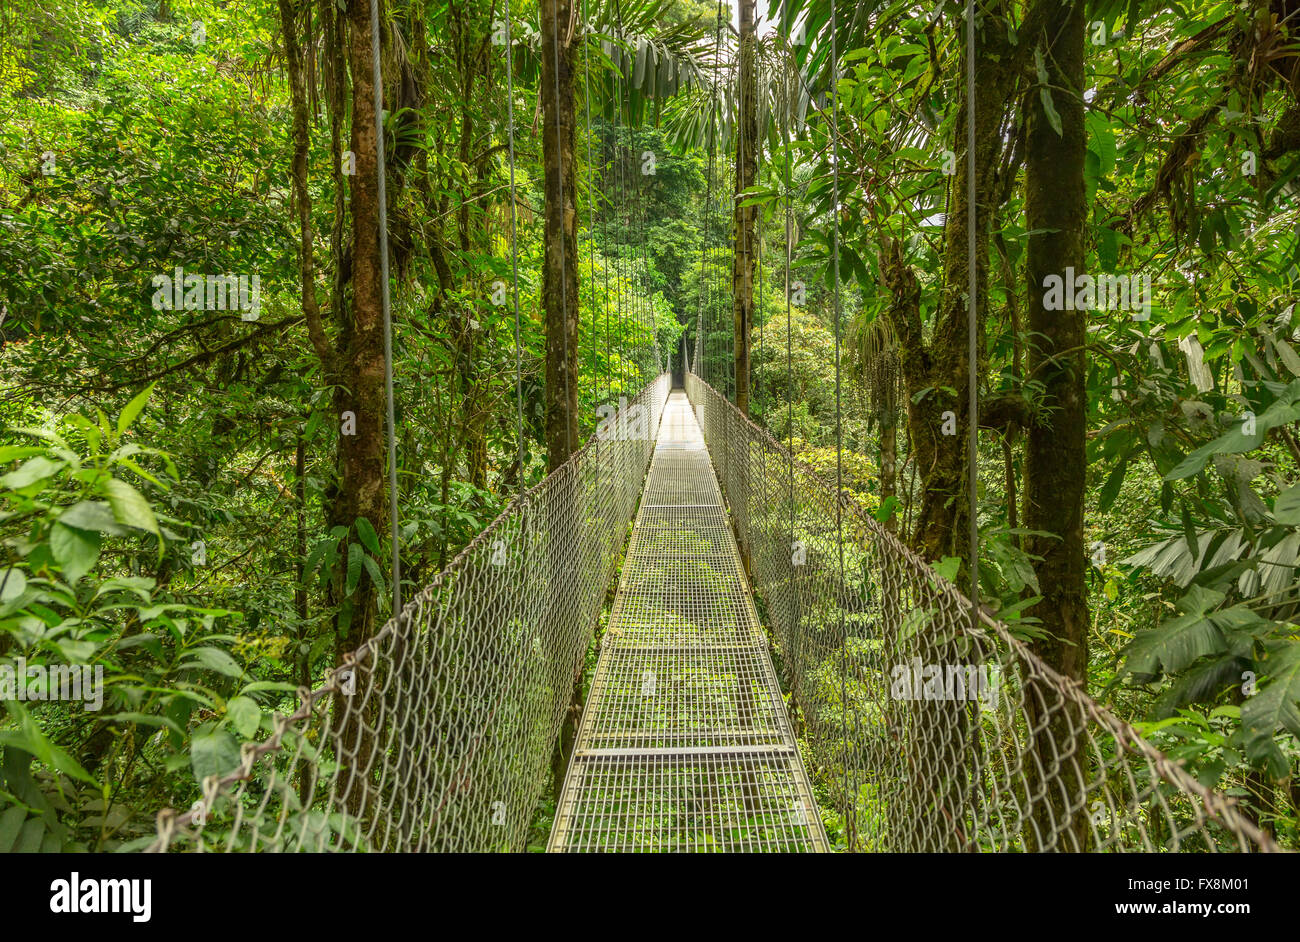 Suspended bridge at natural rainforest park, Costa Rica - Stock Image